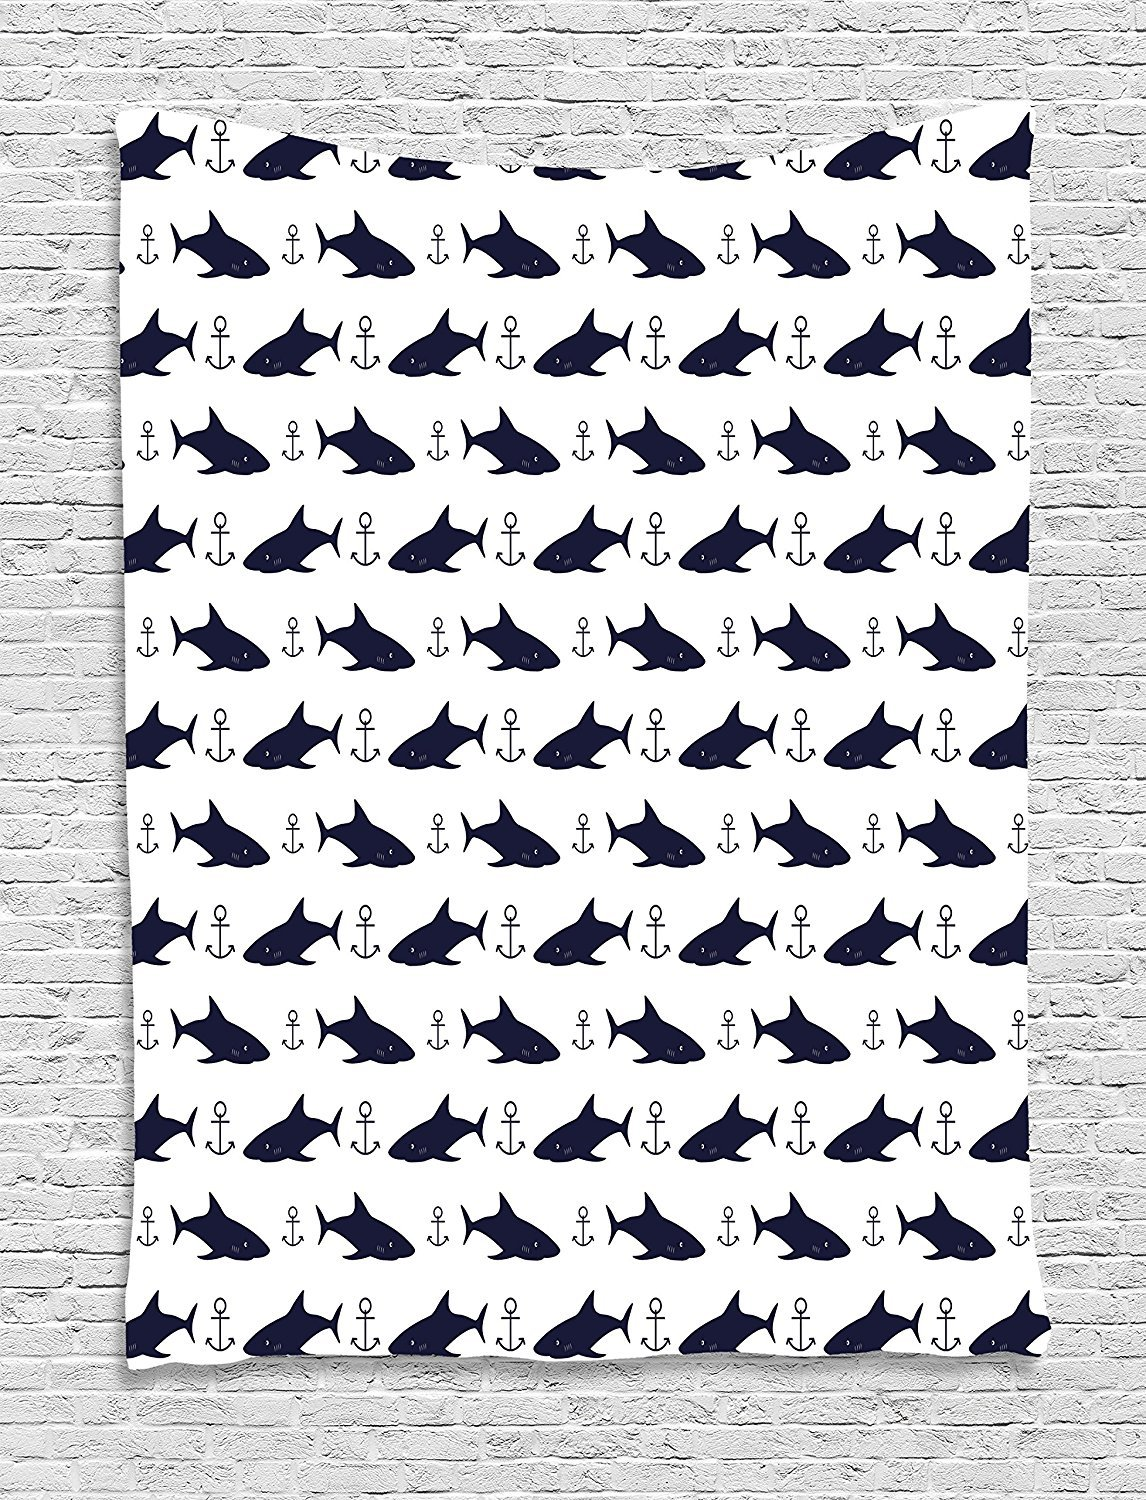 qinghexianpan Anchor Tapestry, Aquatic Pattern with Sharks and Anchors Contemporary Classical Modern Fish Animal, Wall Hanging for Bedroom Living Room Dorm, 60 W X 80 L Inches, Indigo White